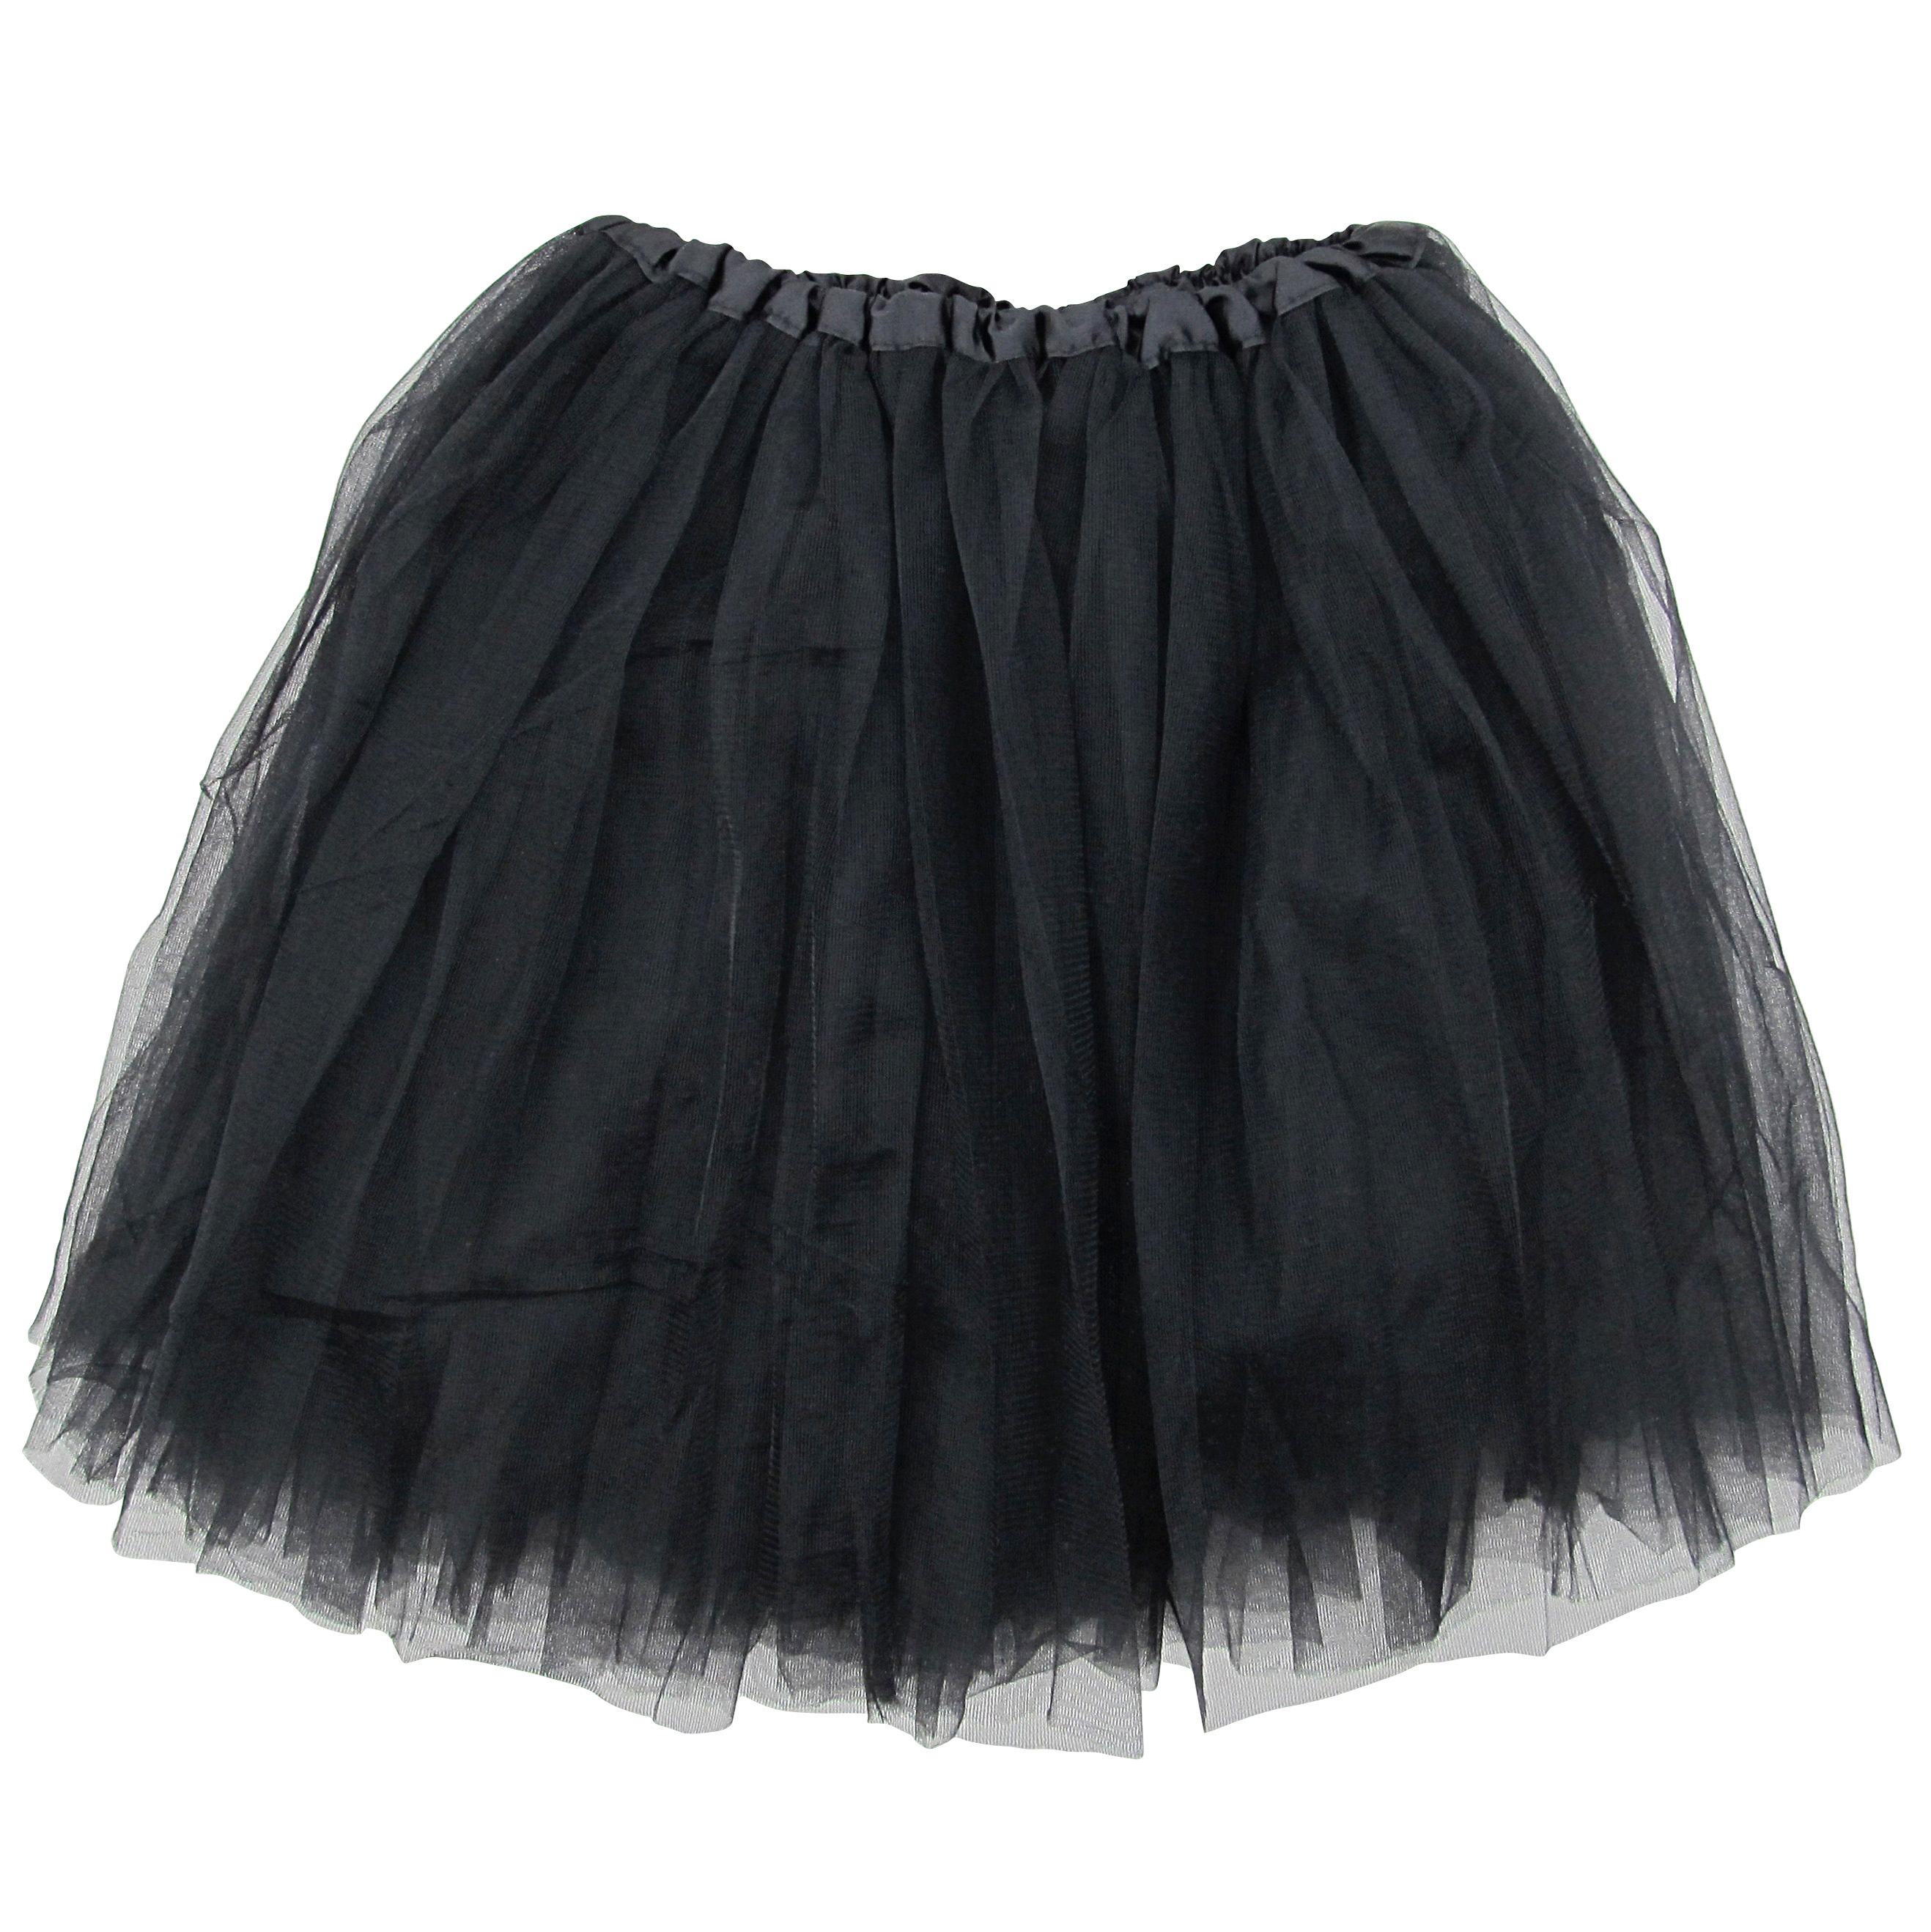 Black Adult Size 3-Layer Tulle Tutu Skirt - Princess Halloween Costume, Ballet Dress, Party Outfit, Warrior Dash/ 5K Run